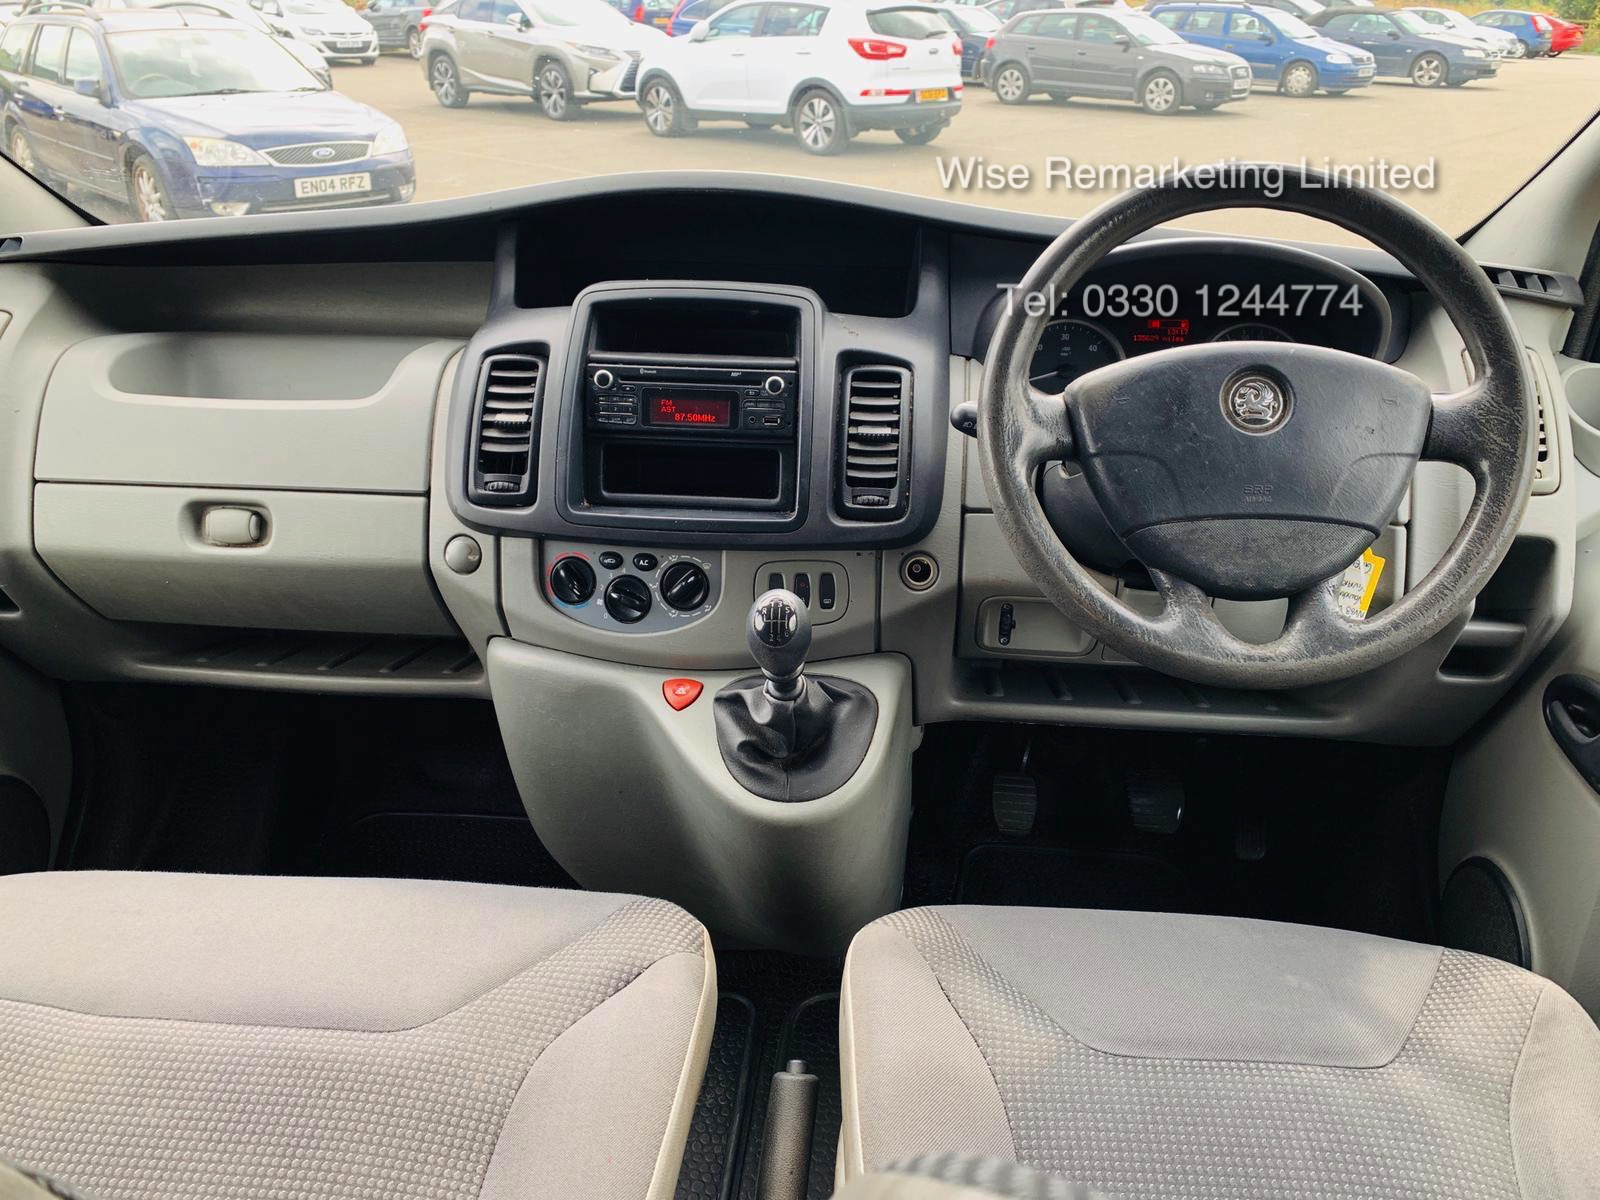 Vauxhall Vivaro 2.0 CDTI 2900 Minibus - 2014 Model - Wheel Chair Access -1 Owner From New -History - Image 11 of 21